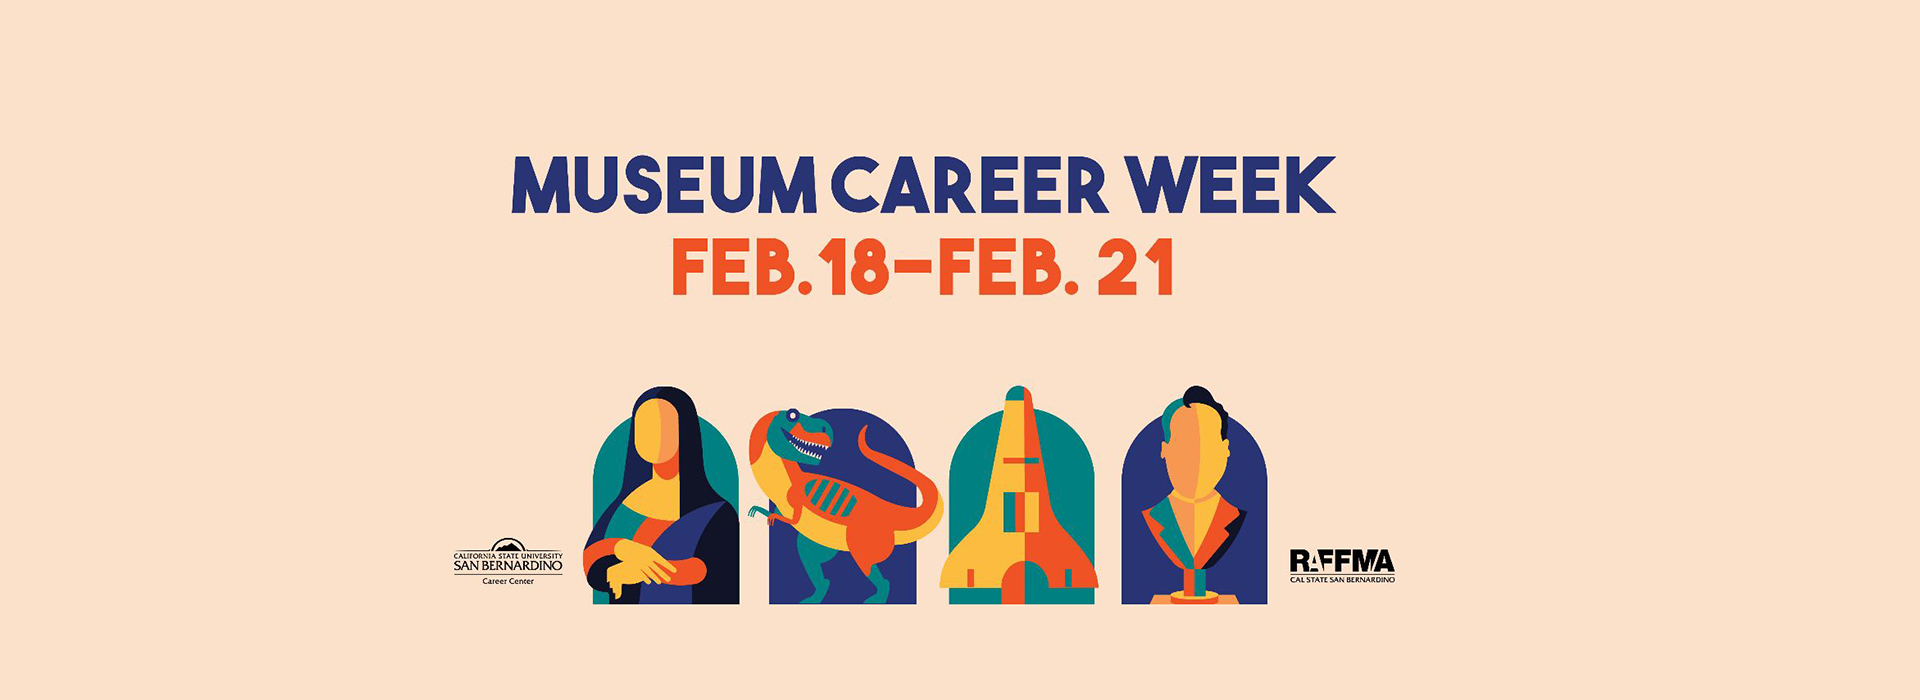 RAFFMA celebrates Museum Career Week through Feb. 21